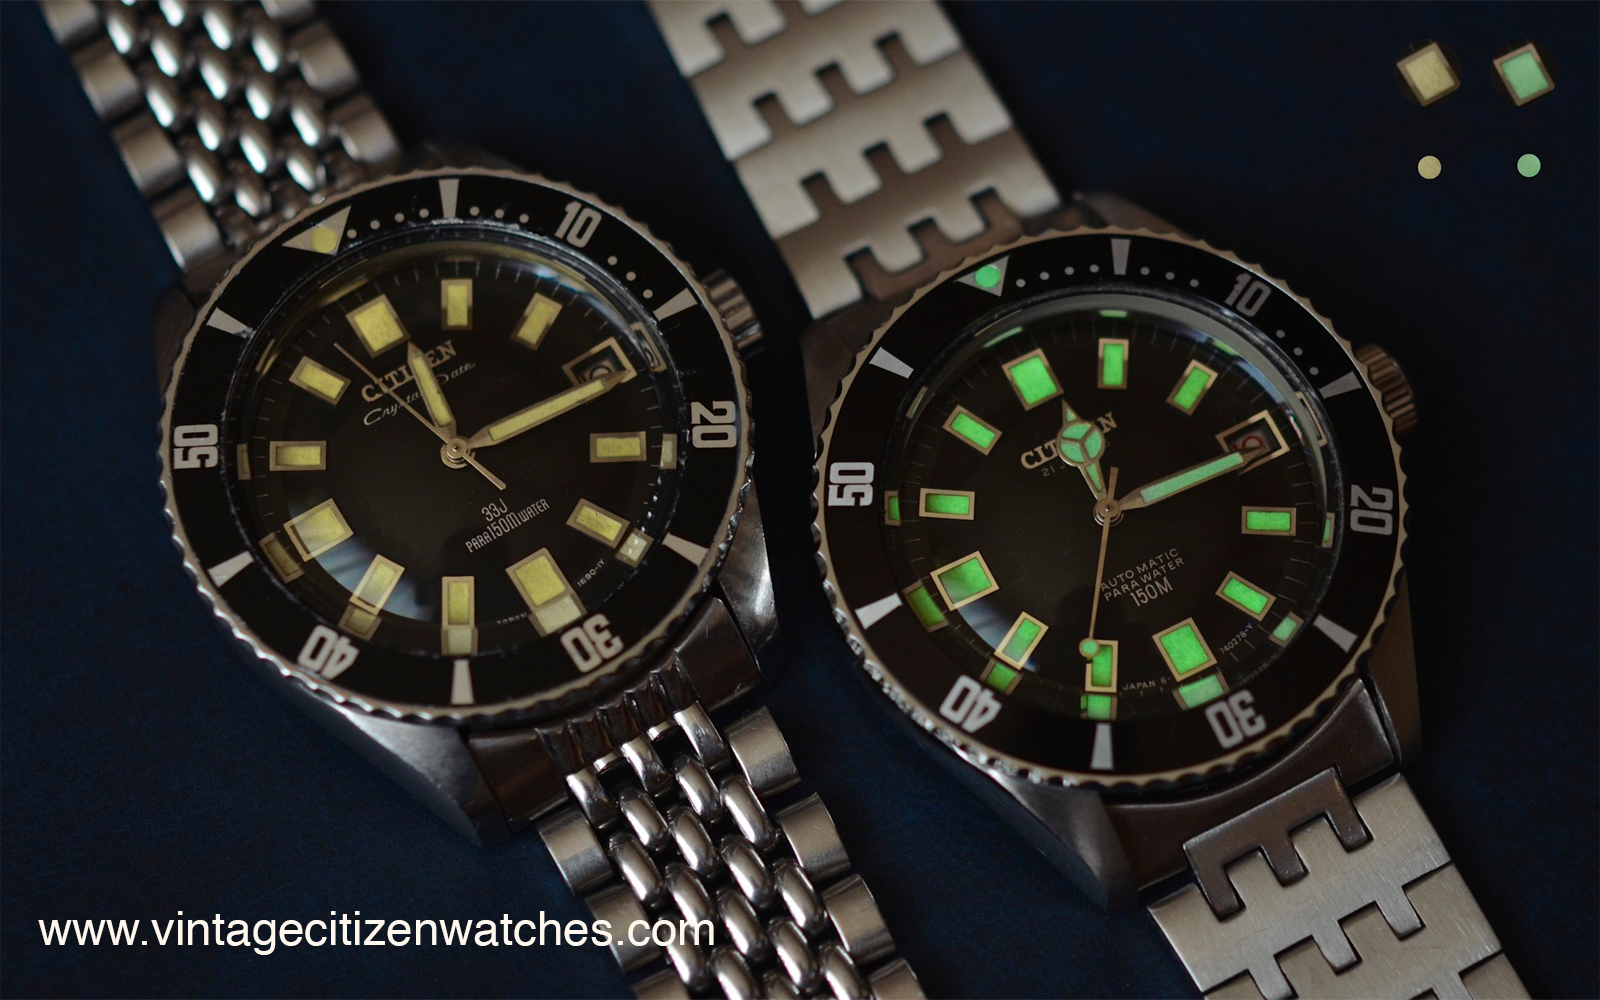 Vintage Citizen Watches Lume Patina – Vintage Citizen Watches